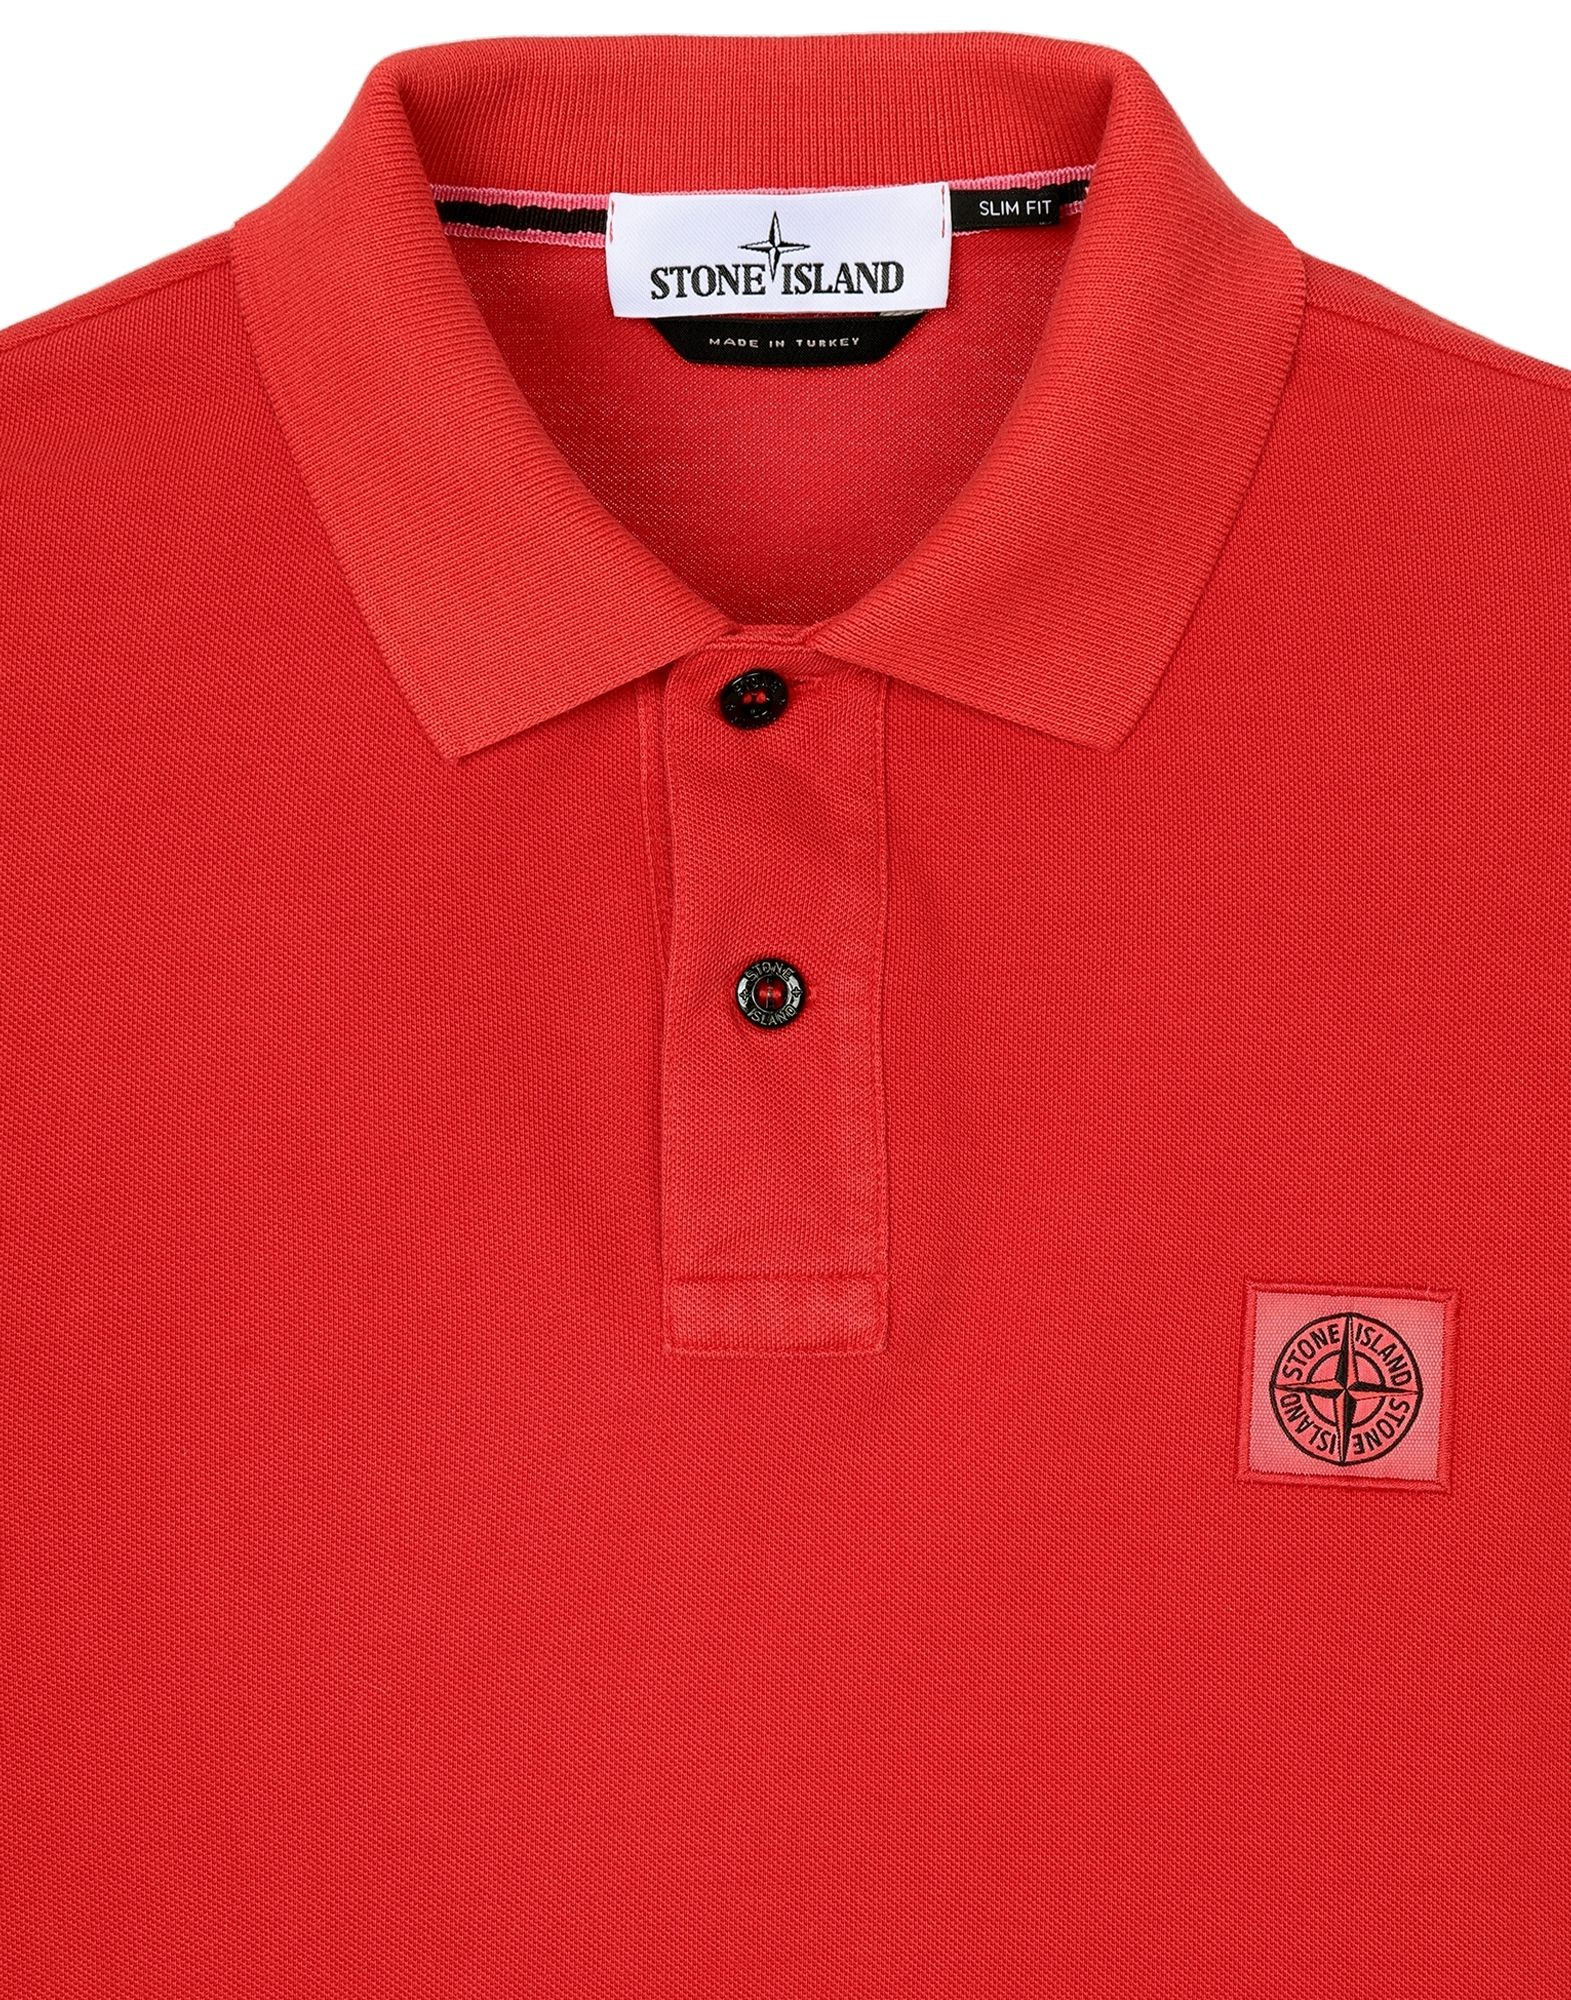 3440c04d9 ... Preview  Stone Island Polo Shirt ...